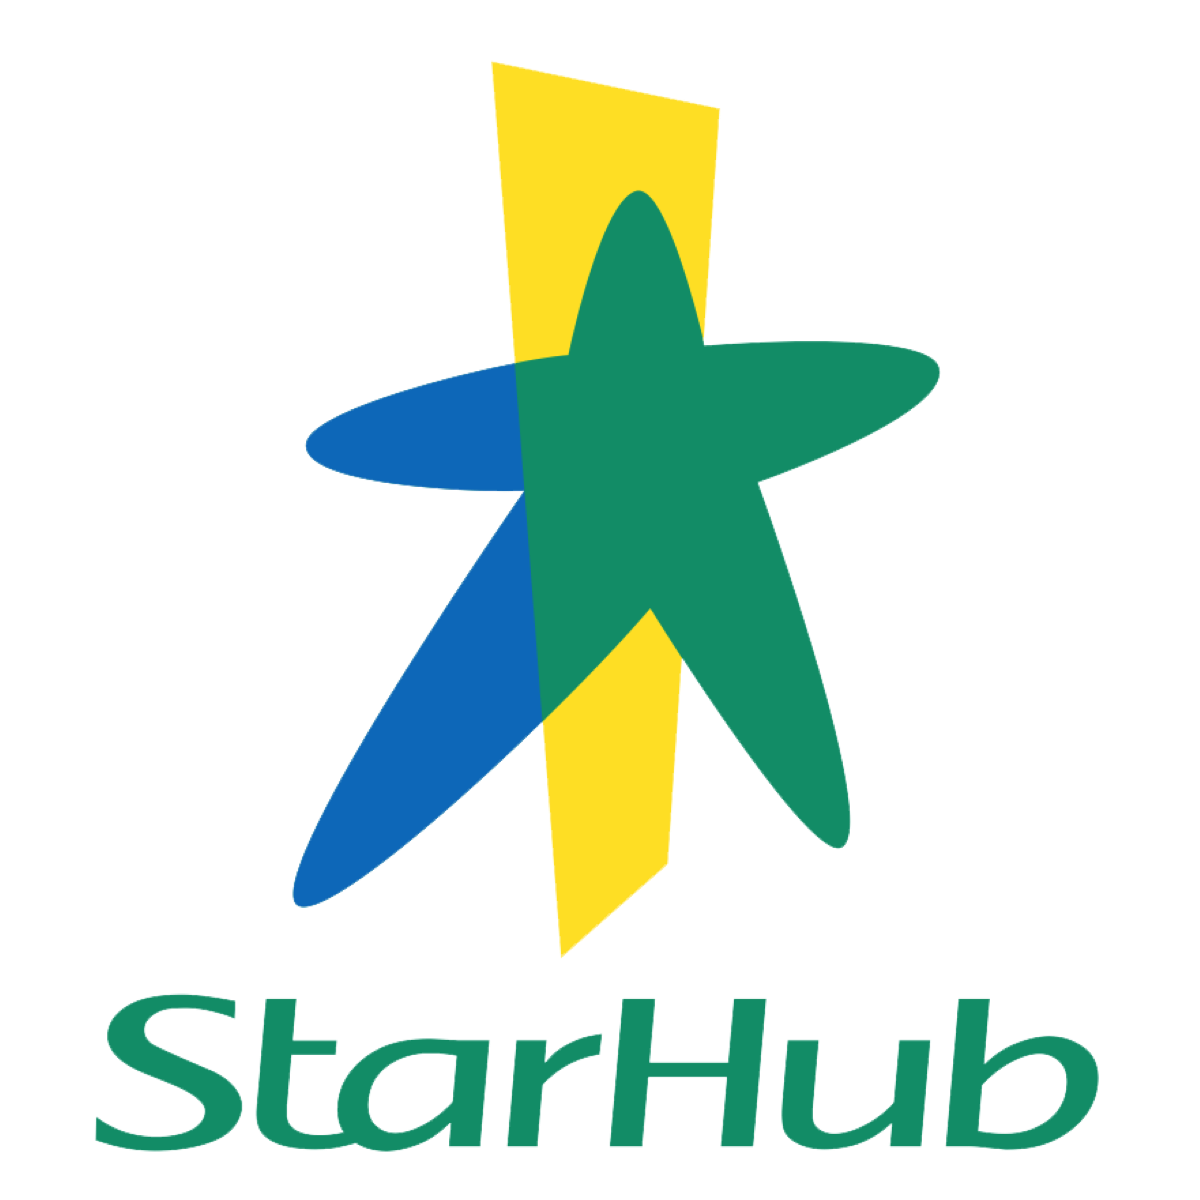 Starhub - DBS Vickers 2017-01-13: Boost from network sharing